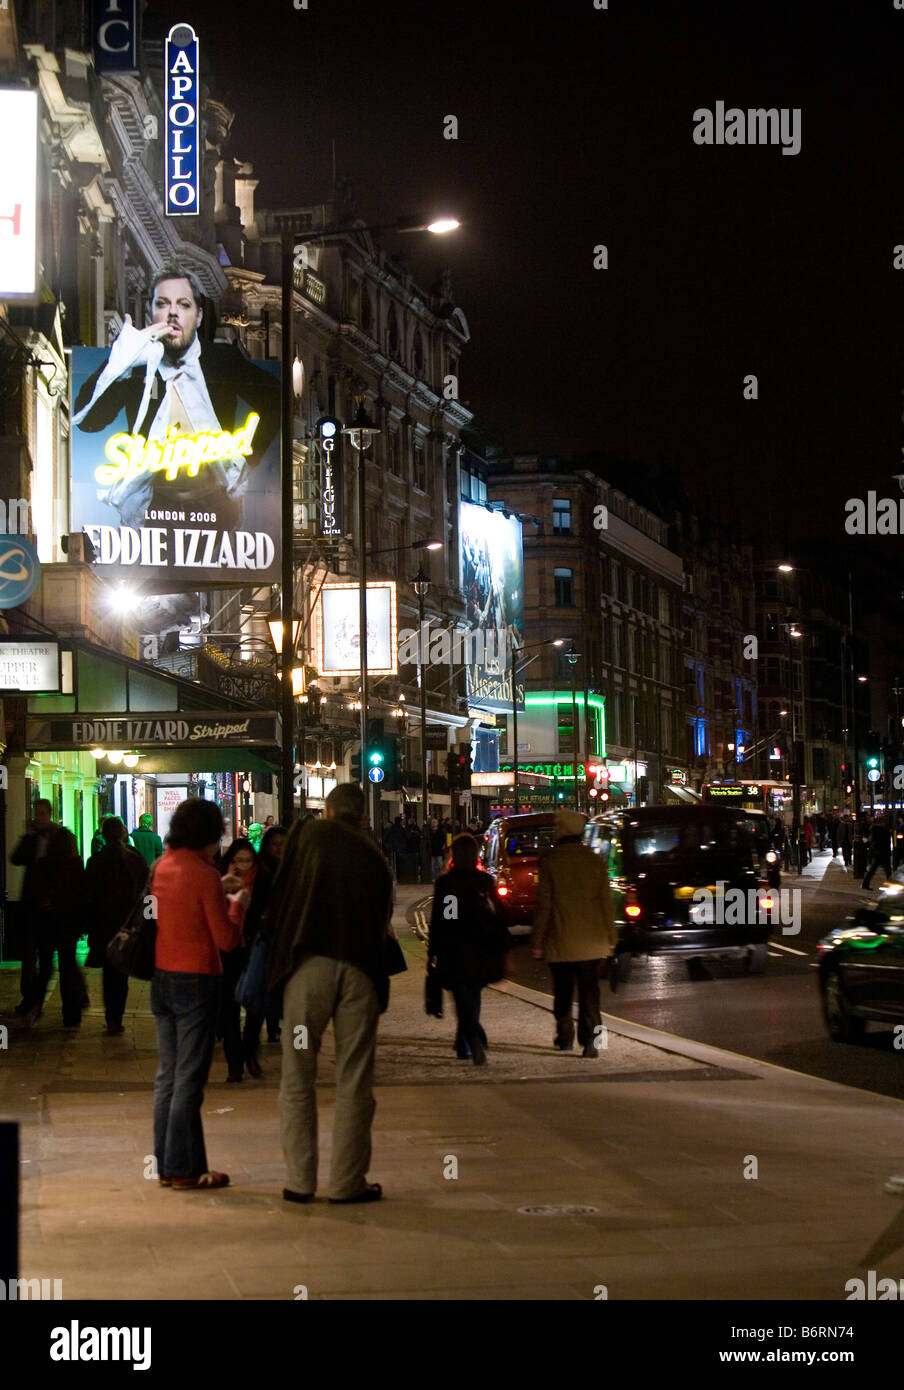 A view along Shaftesbury Avenue London from Picadilly - Stock Image